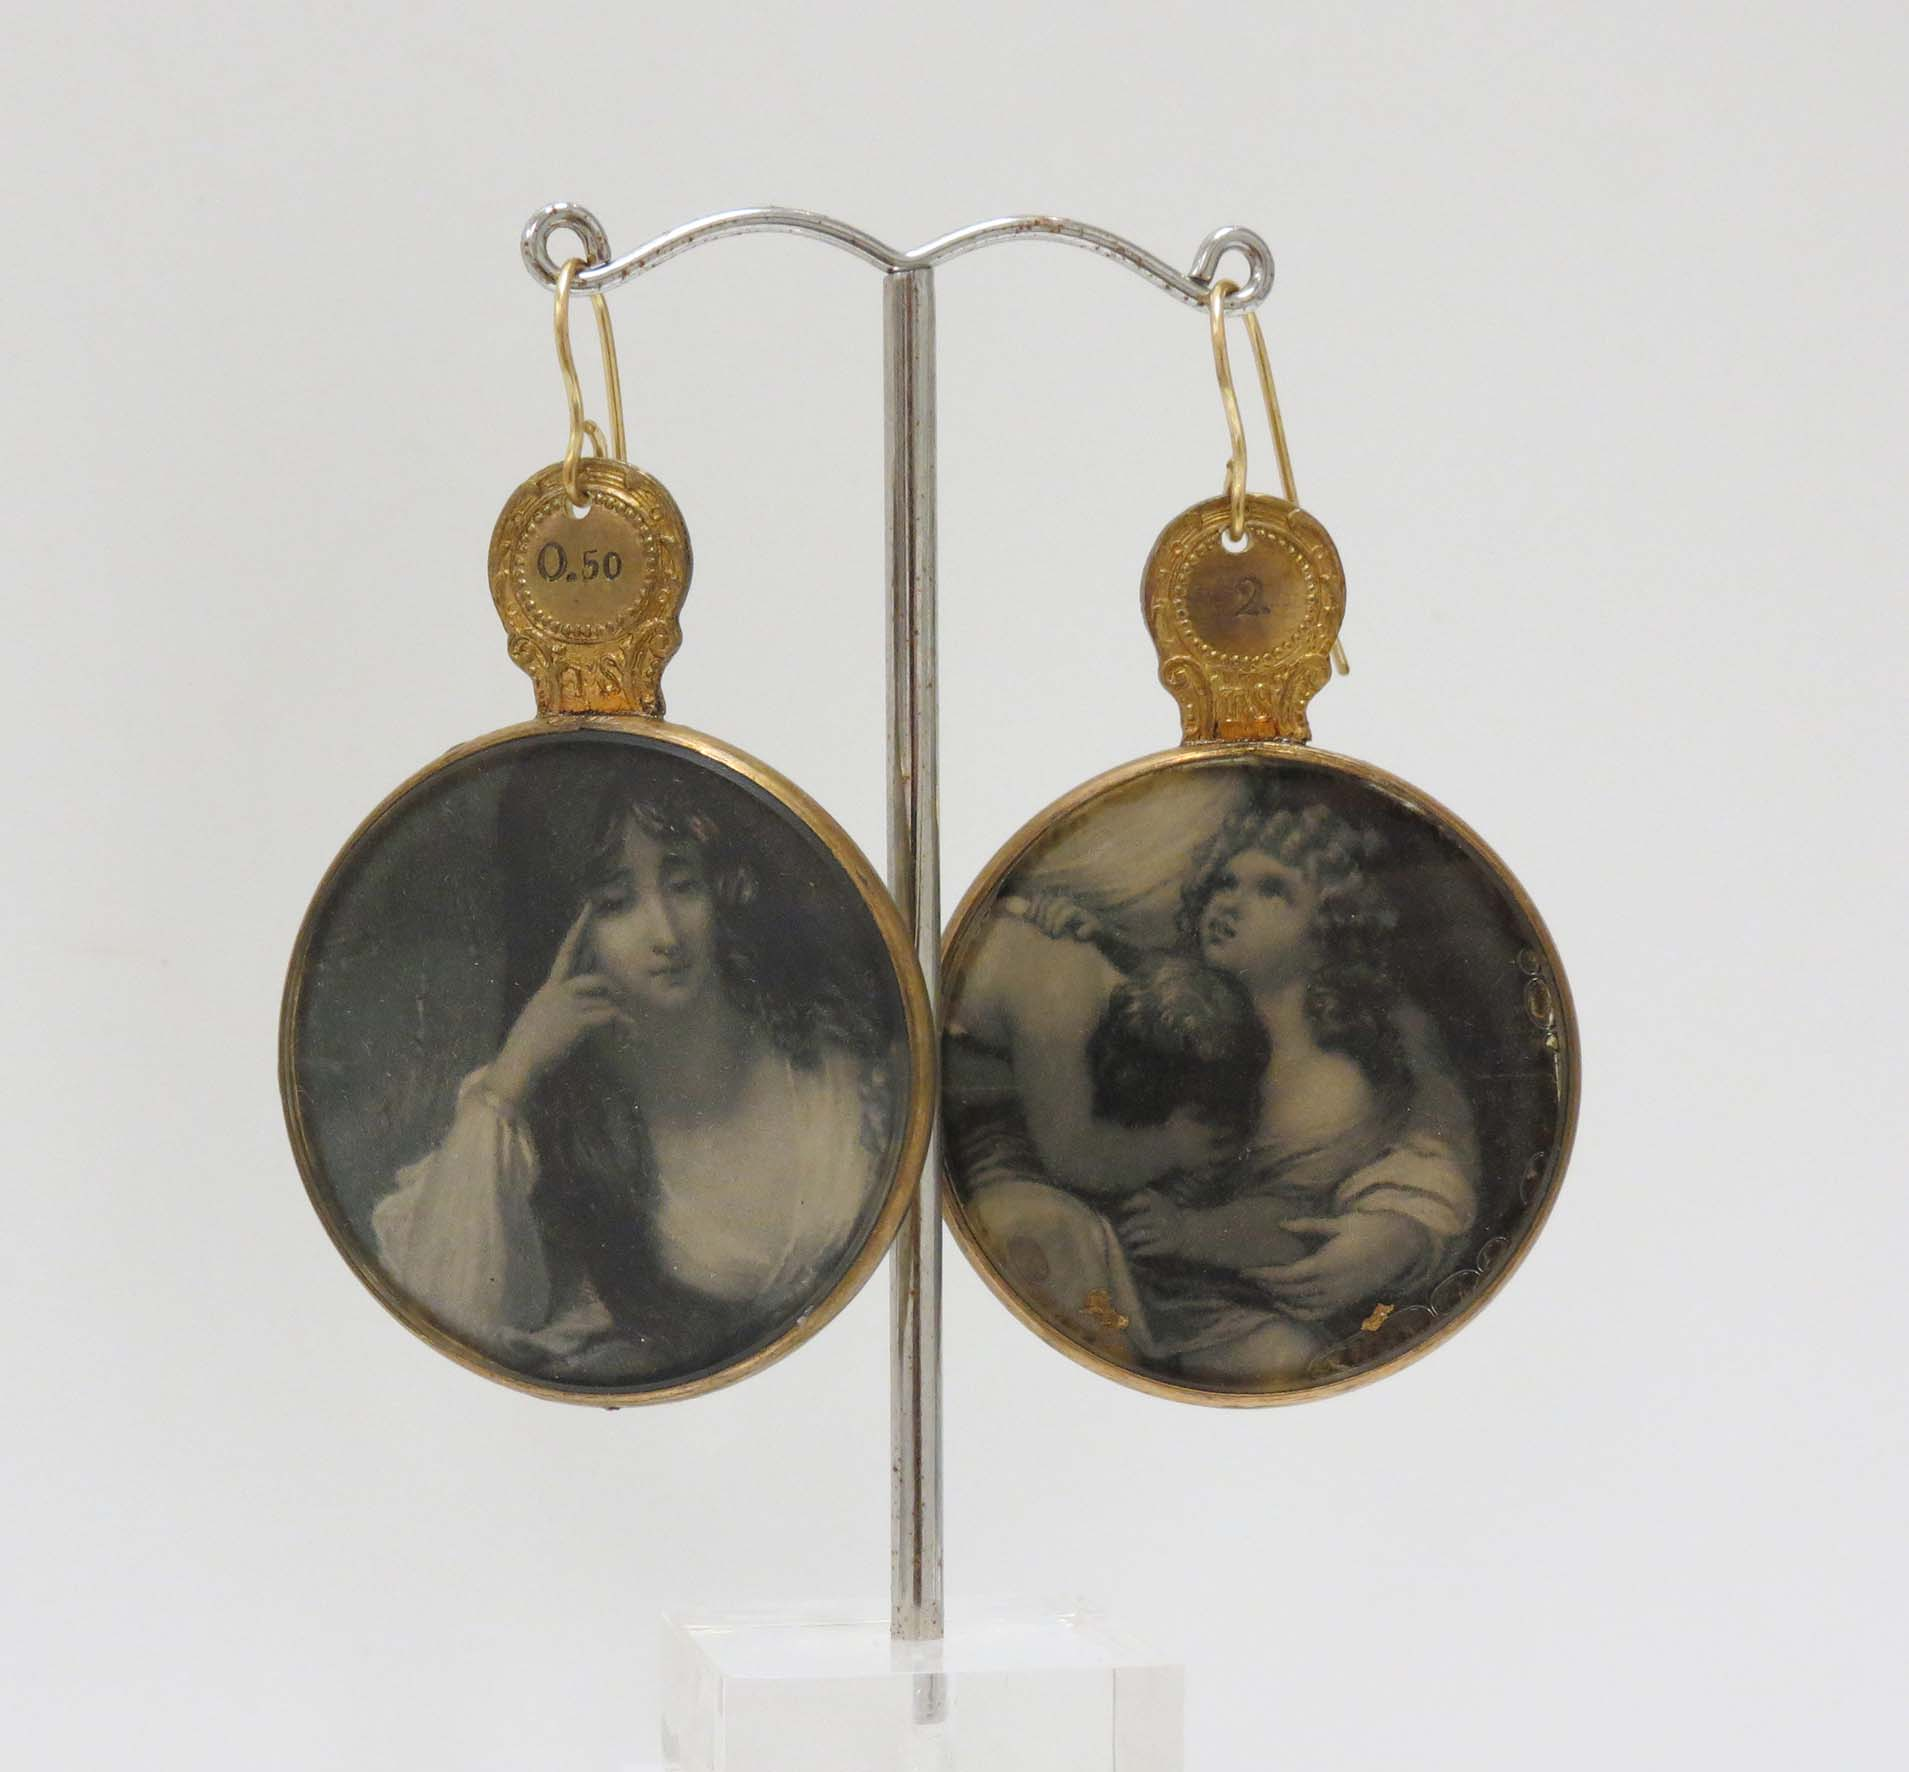 21. Kathy Aspinall, 'Optical', 2018, Victorian optometrist lens, antique paper, earrings, $250